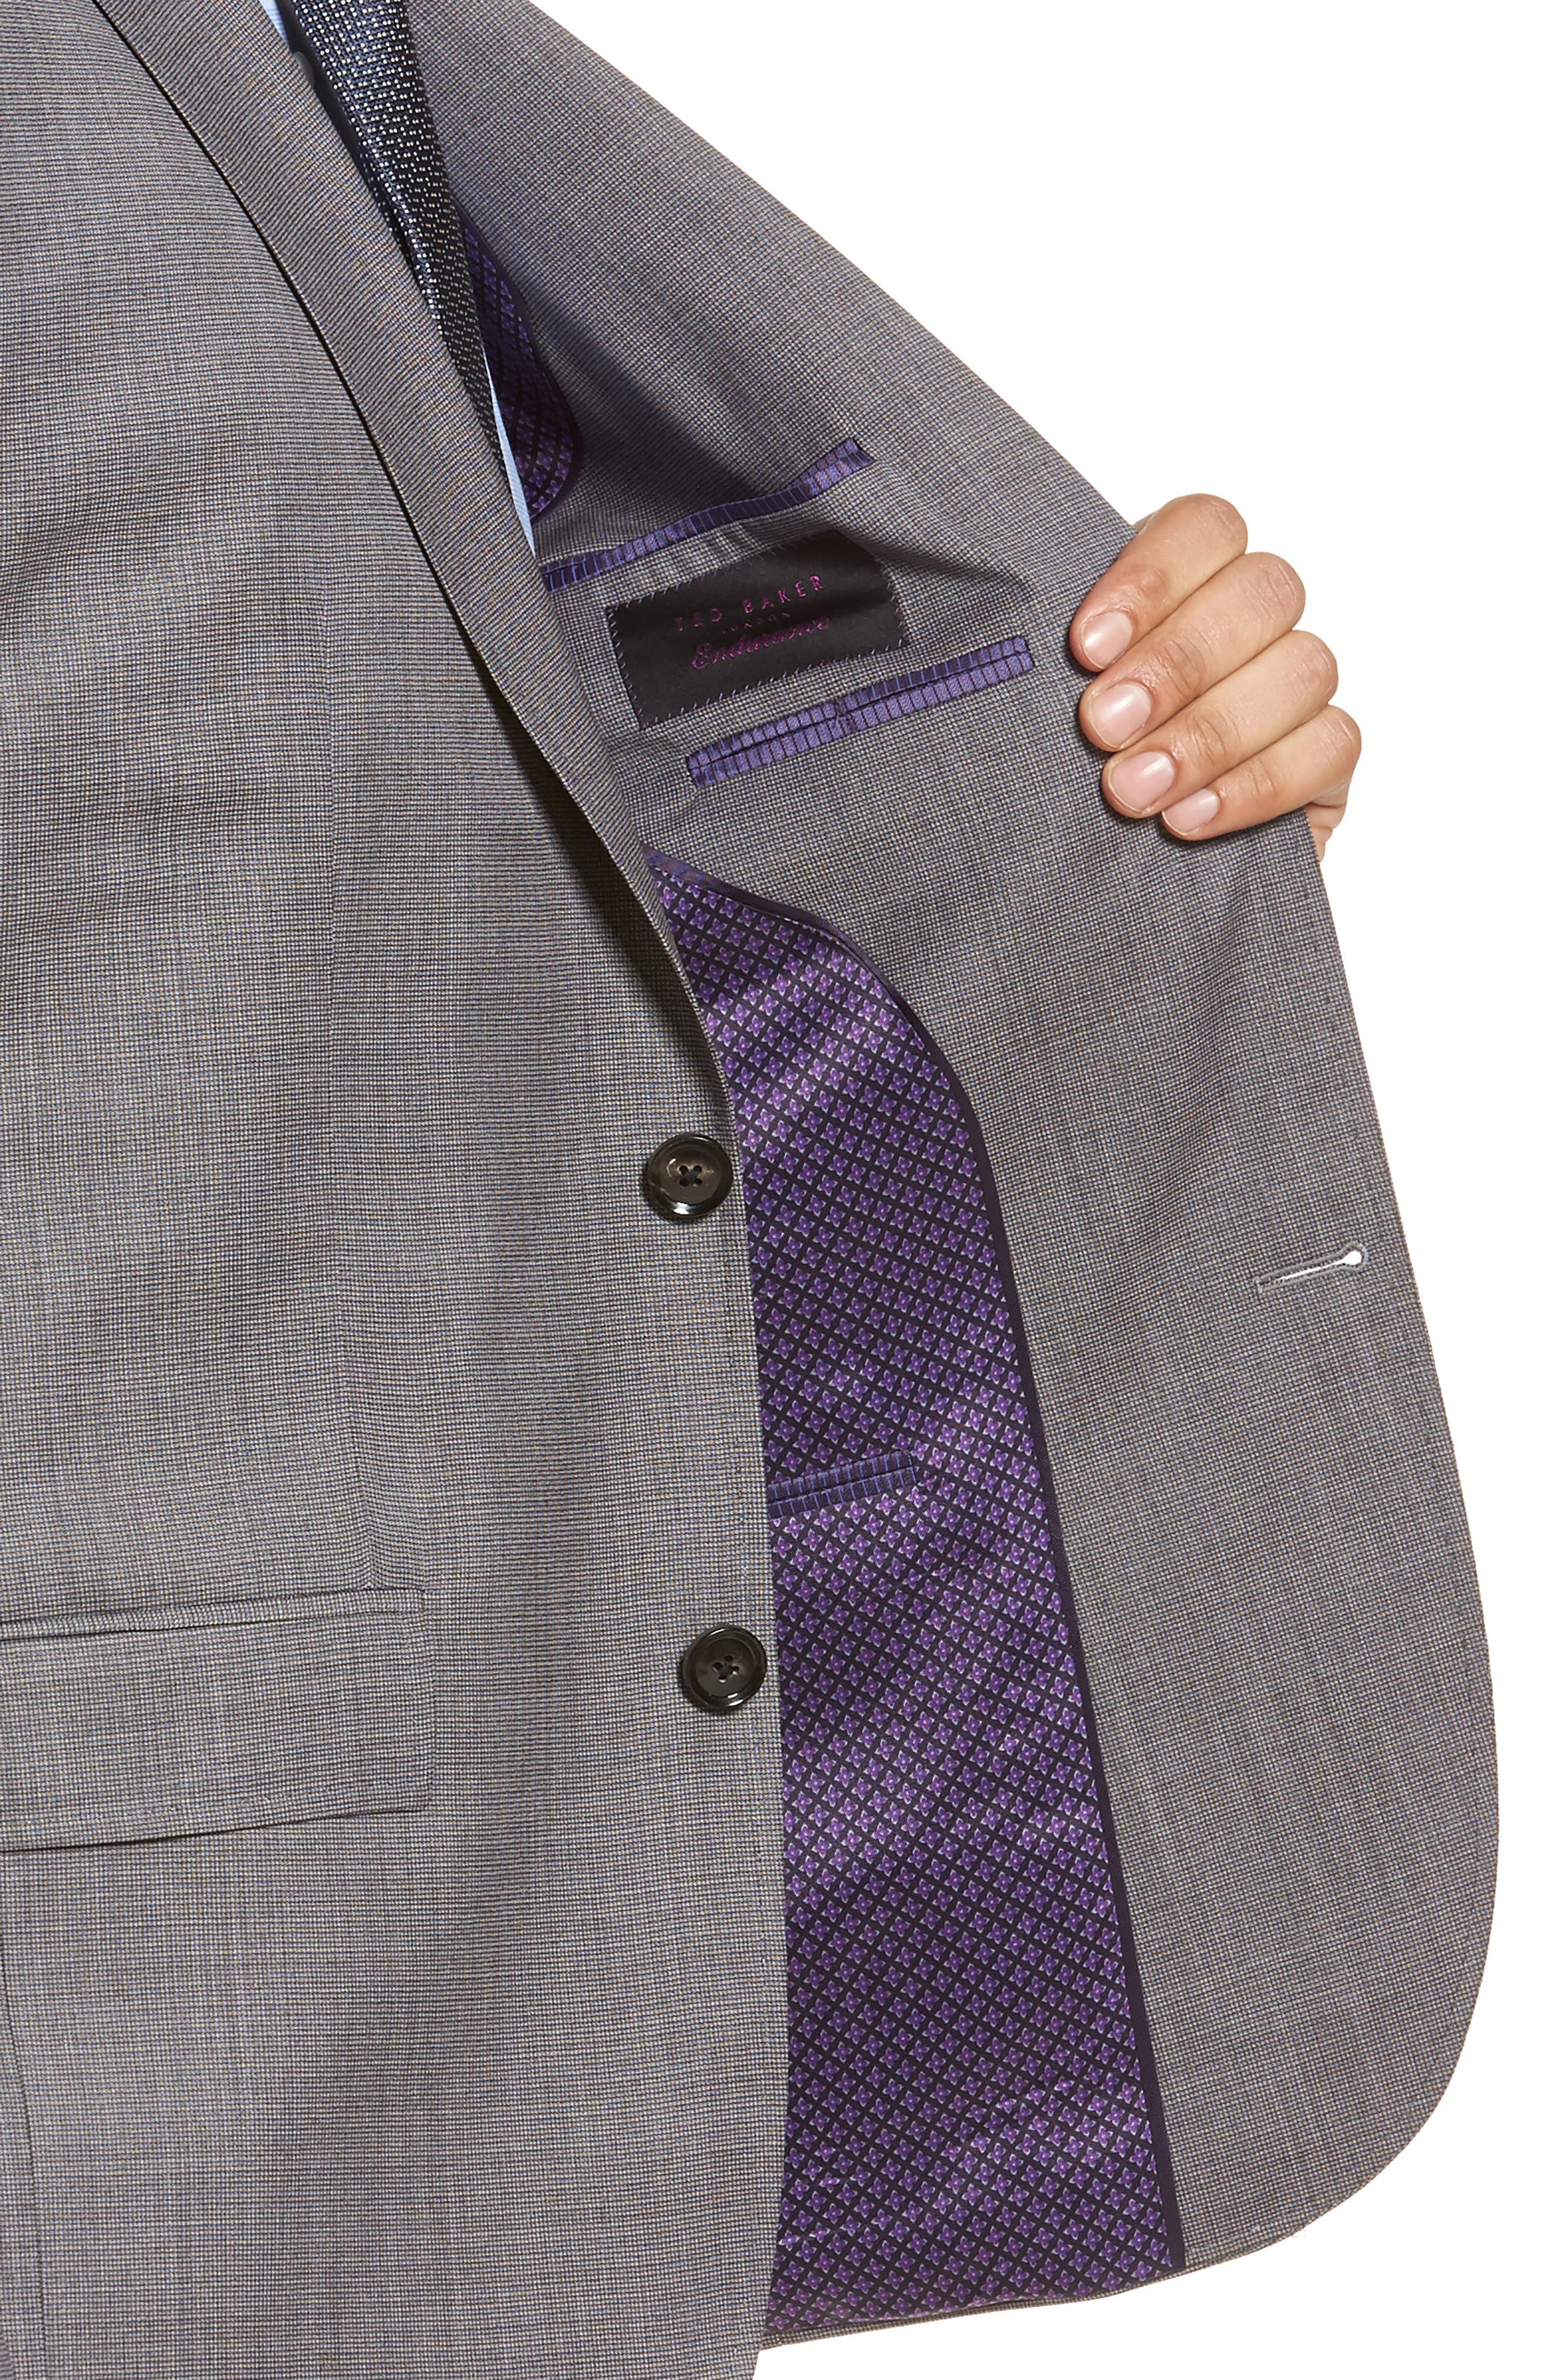 Roger Extra Slim Fit Solid Wool Suit,                             Alternate thumbnail 4, color,                             Taupe